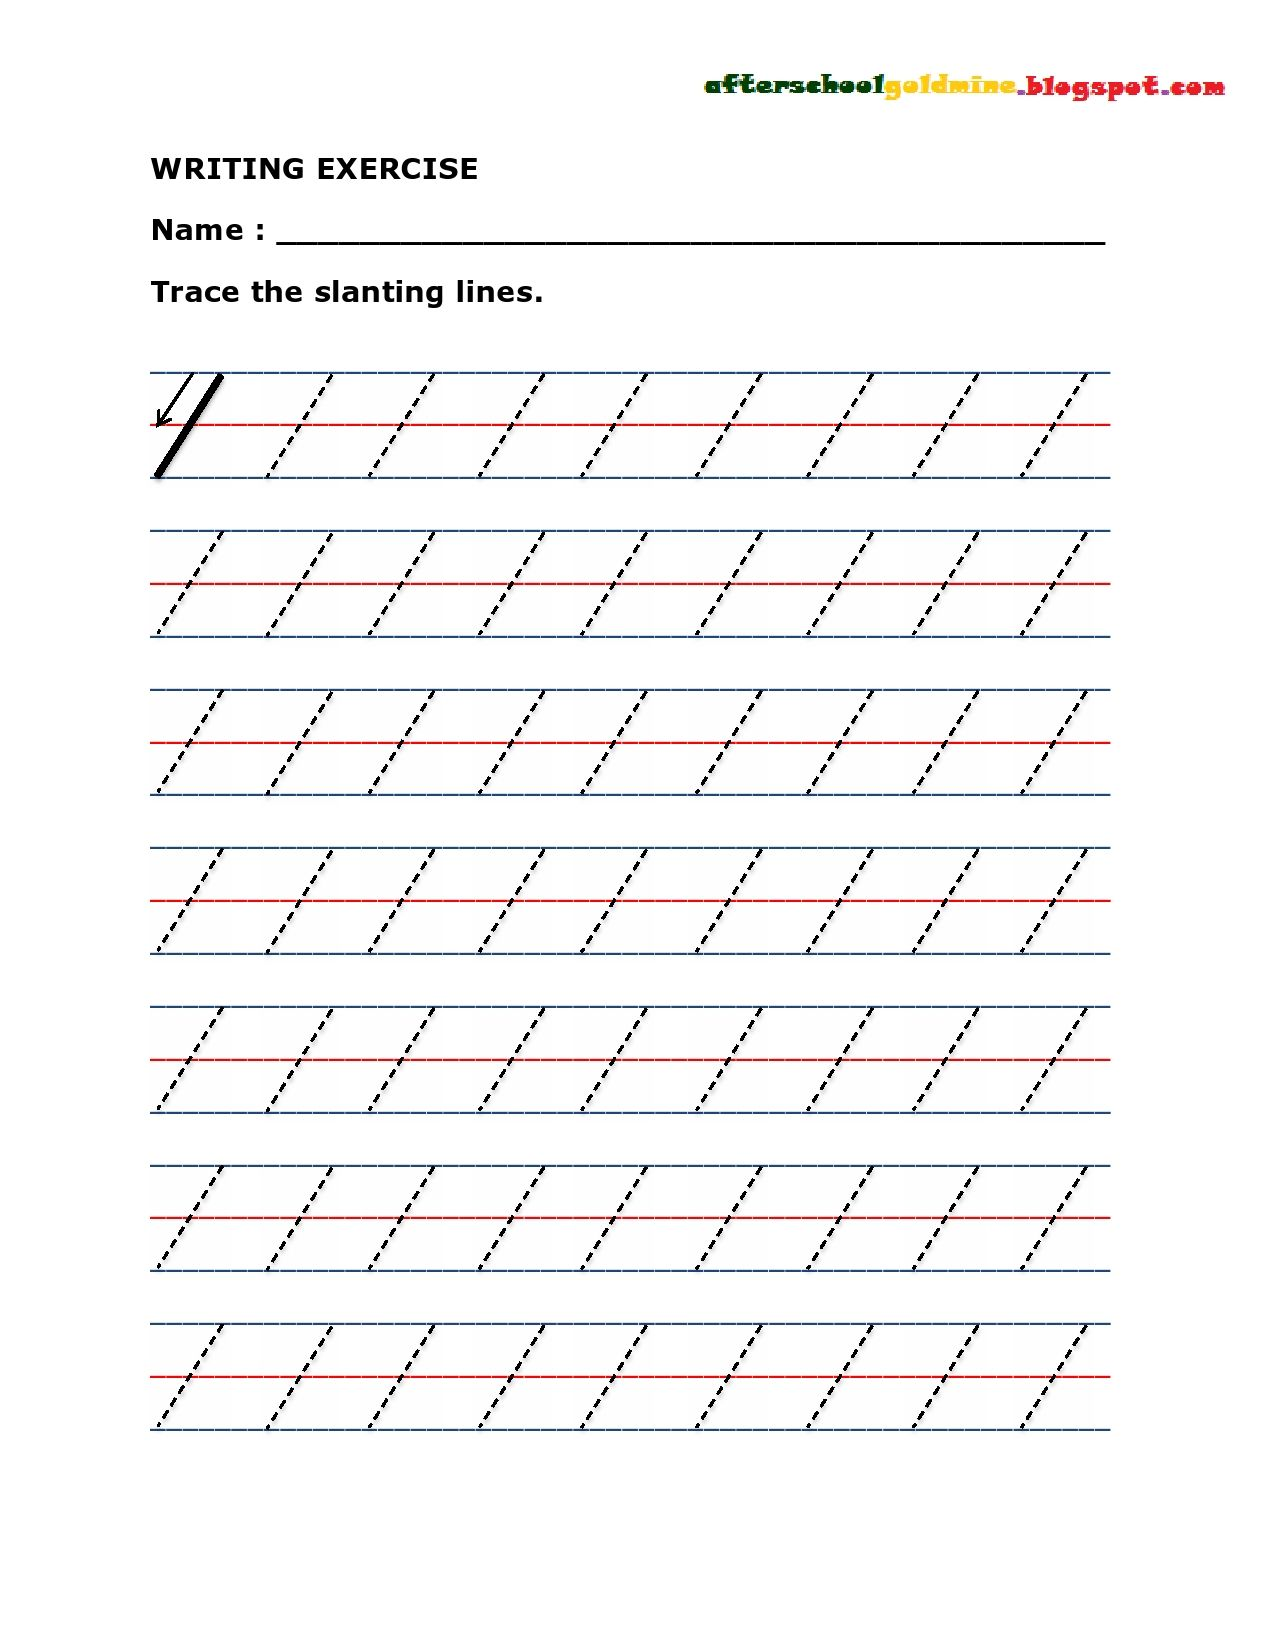 Writing Exercise Slanting Lines